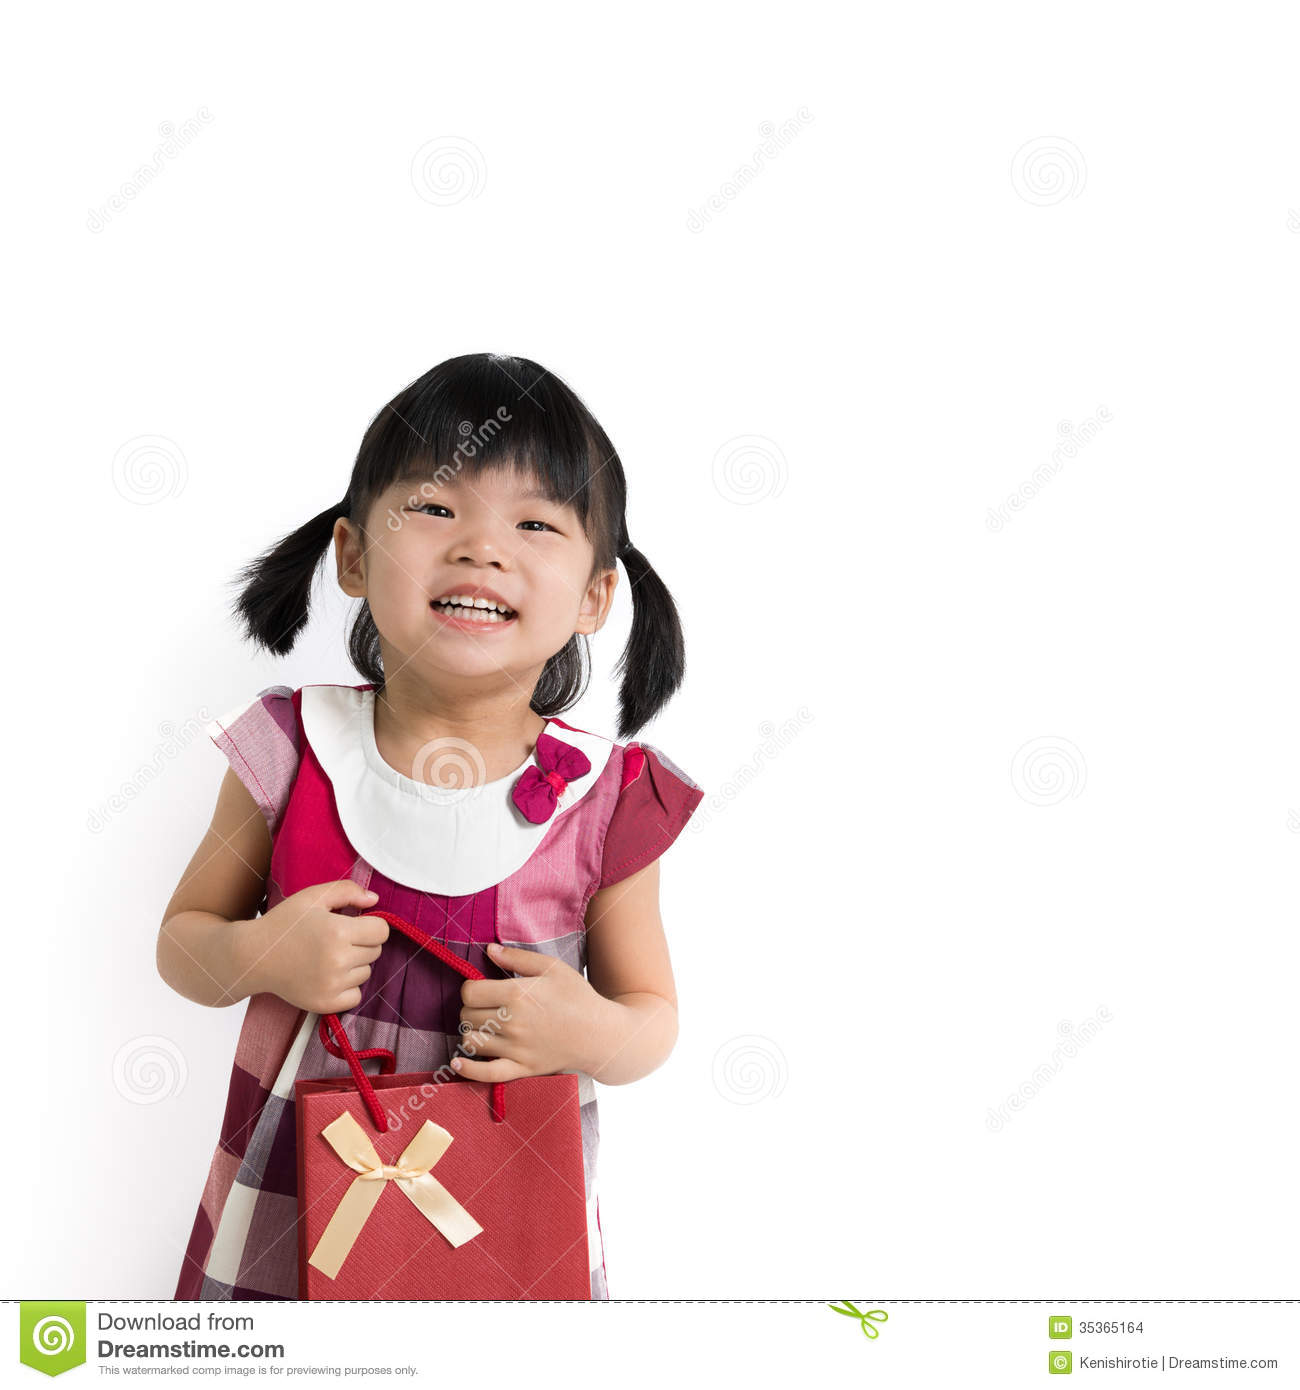 Le Meilleur Toddler Girl With Gift Bag Stock Images Image 35365164 Ce Mois Ci